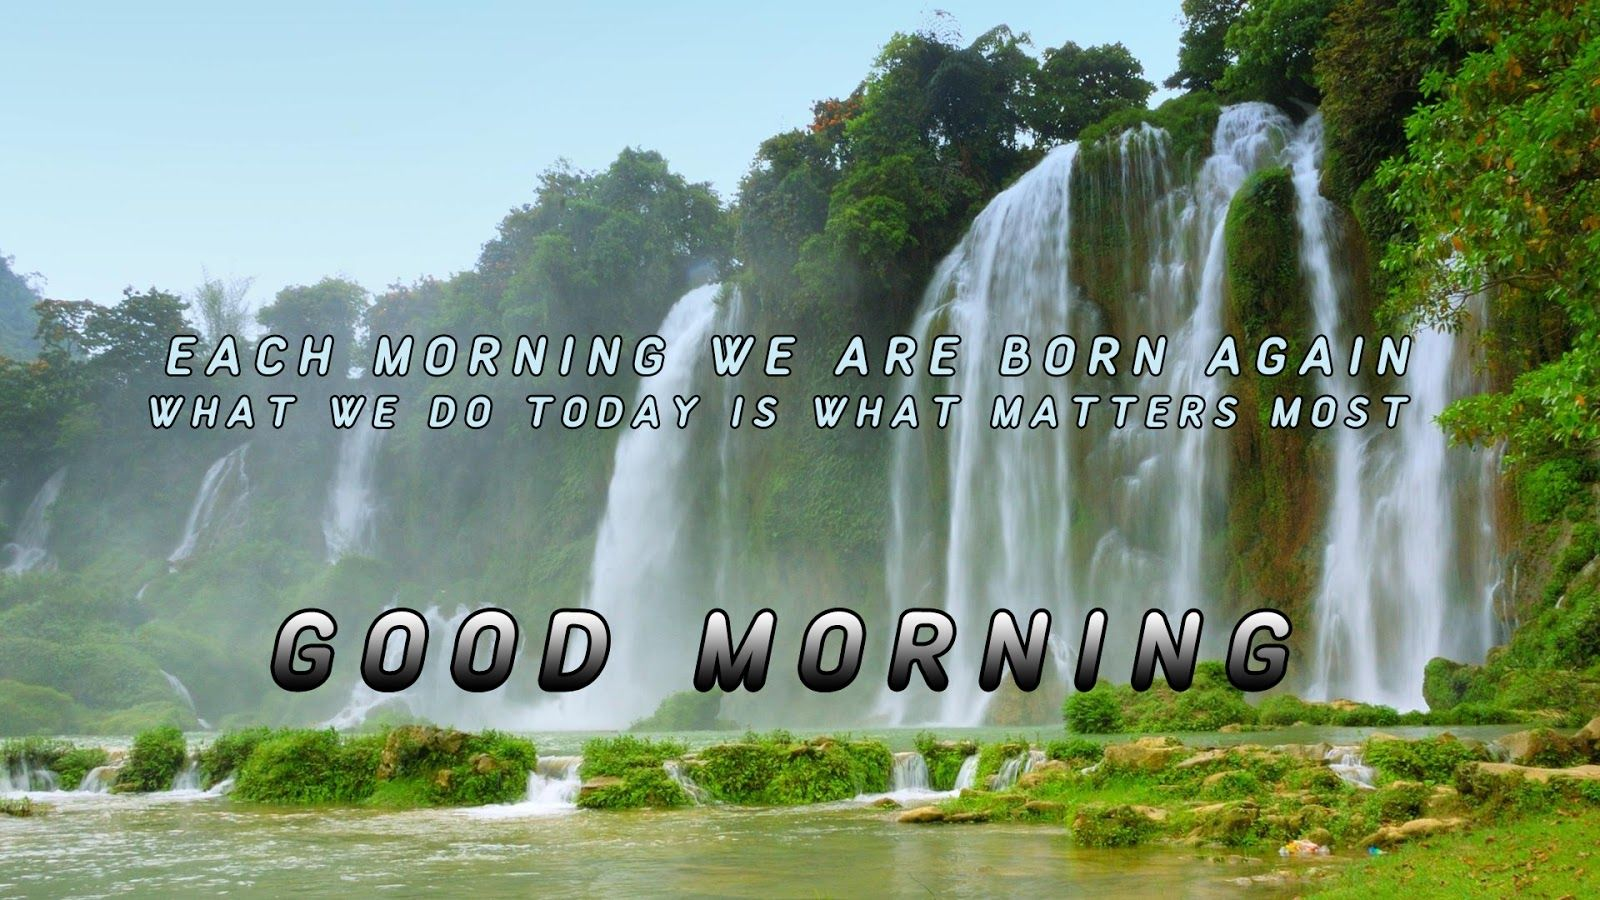 50 Amazing Good Morning Images With Nature Quotes Good Morning Images Good Morning Picture Morning Images